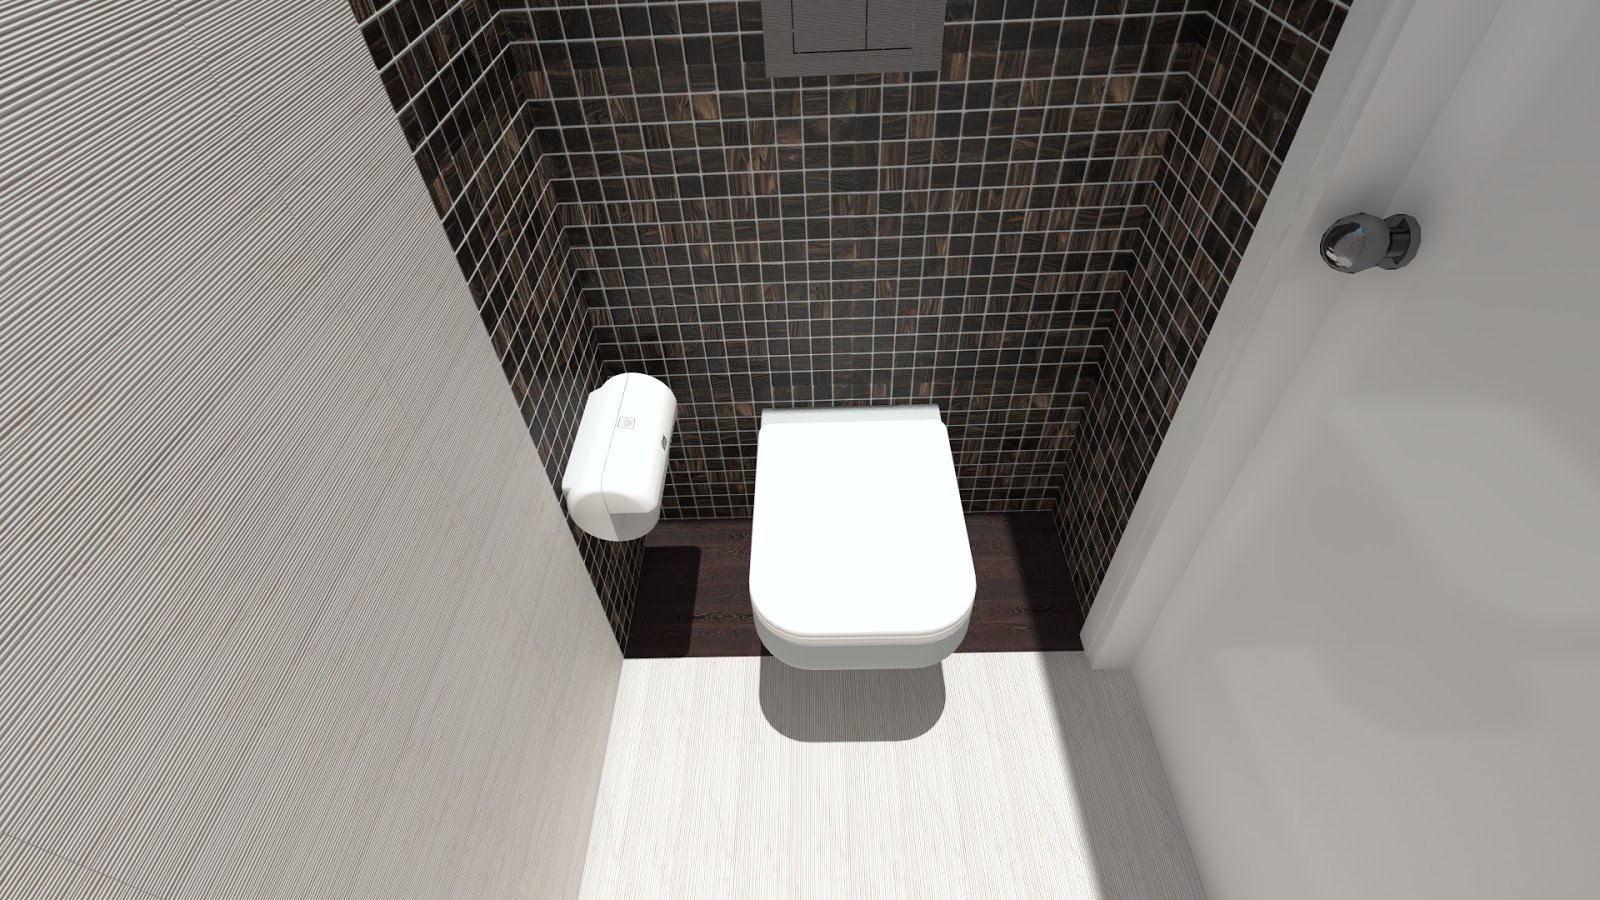 Mosaic tile in toilet design